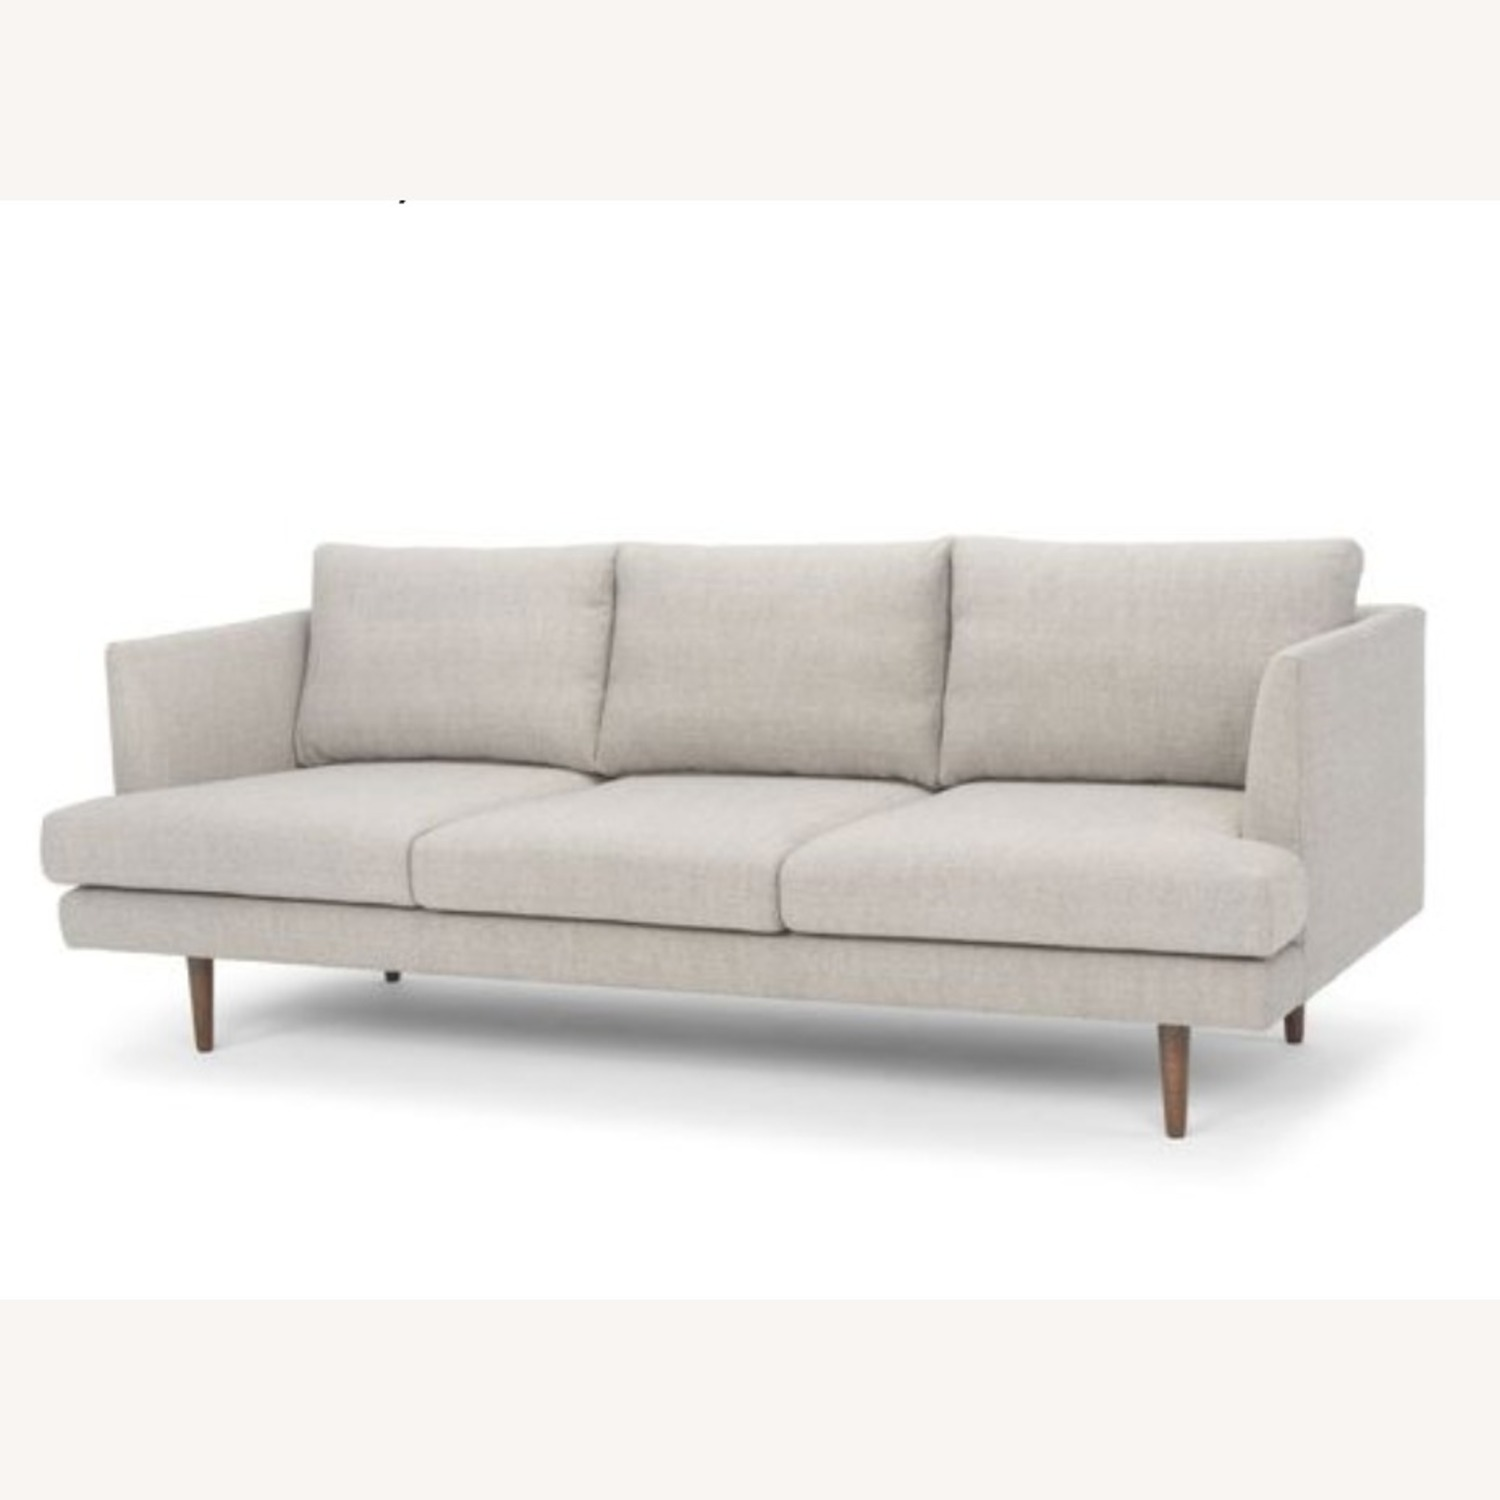 Comfortable Mid-Century Modern Light Grey Couch - image-1